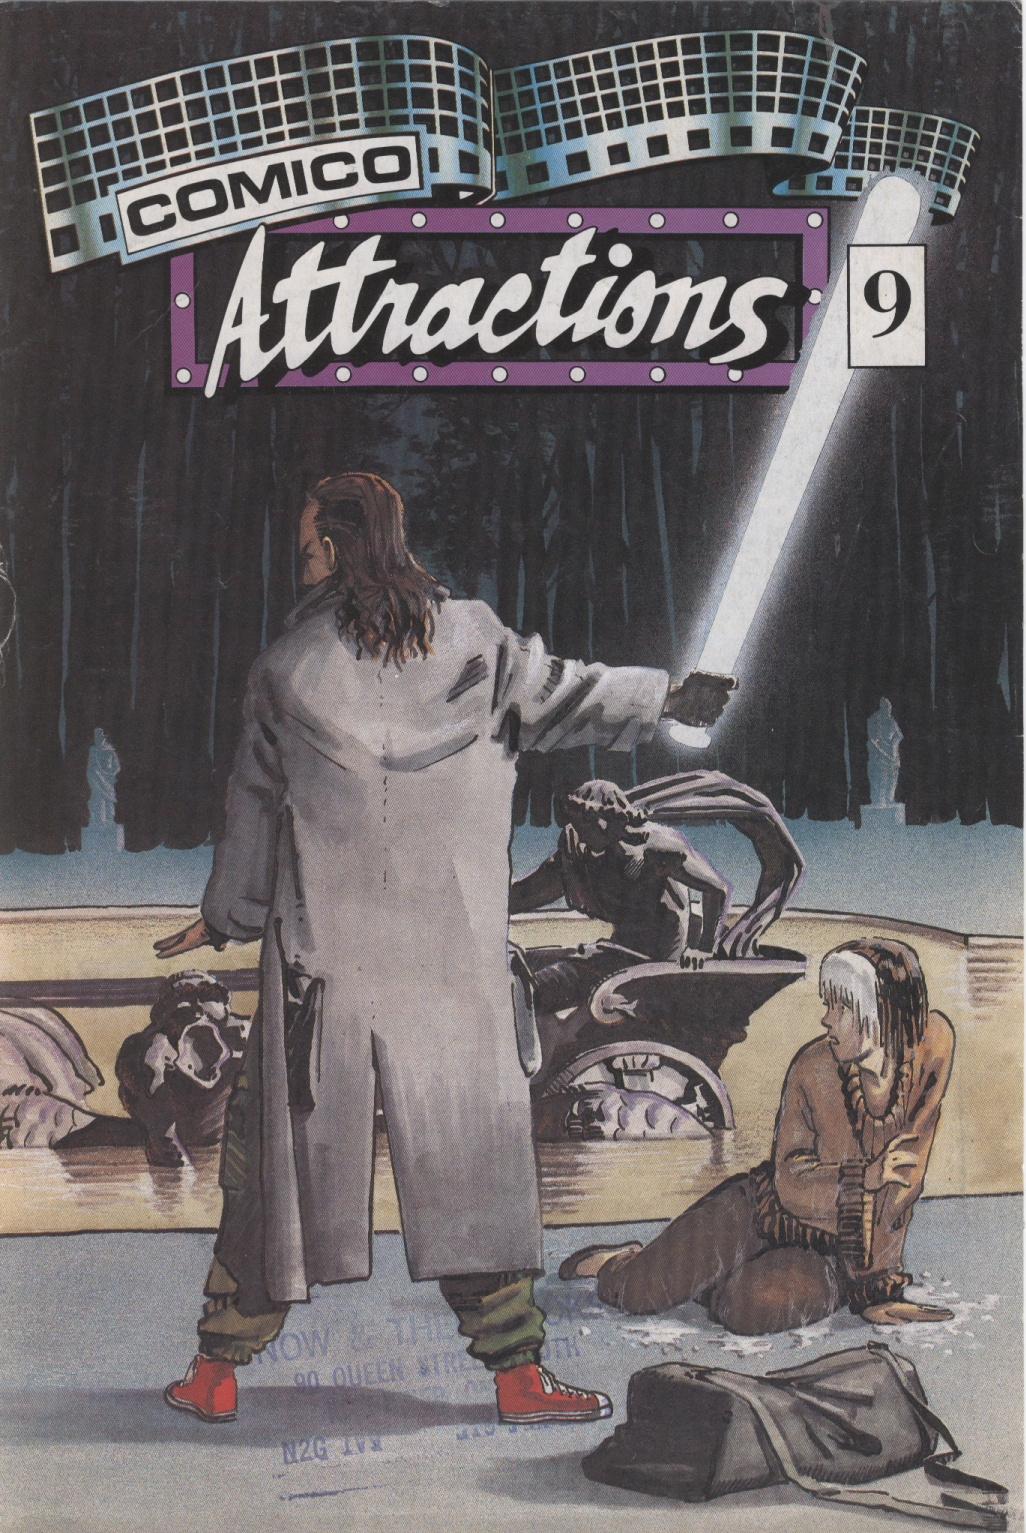 Time Capsule: Comico Attractions 9, 1987